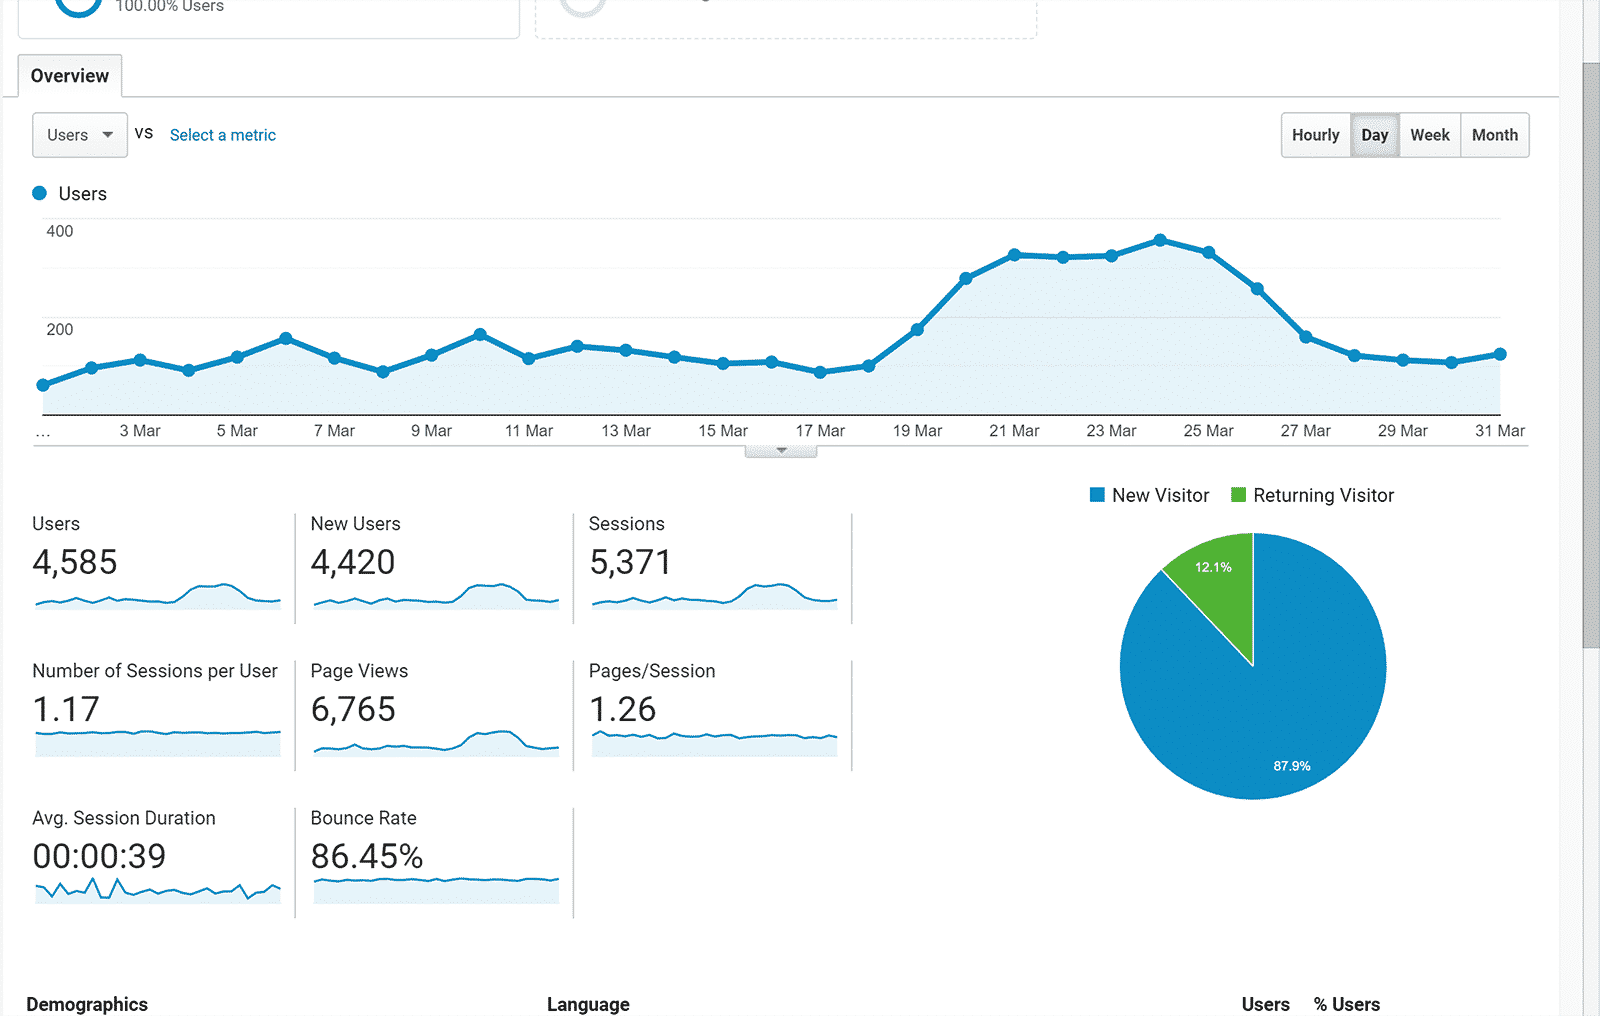 March 2019 overall traffic